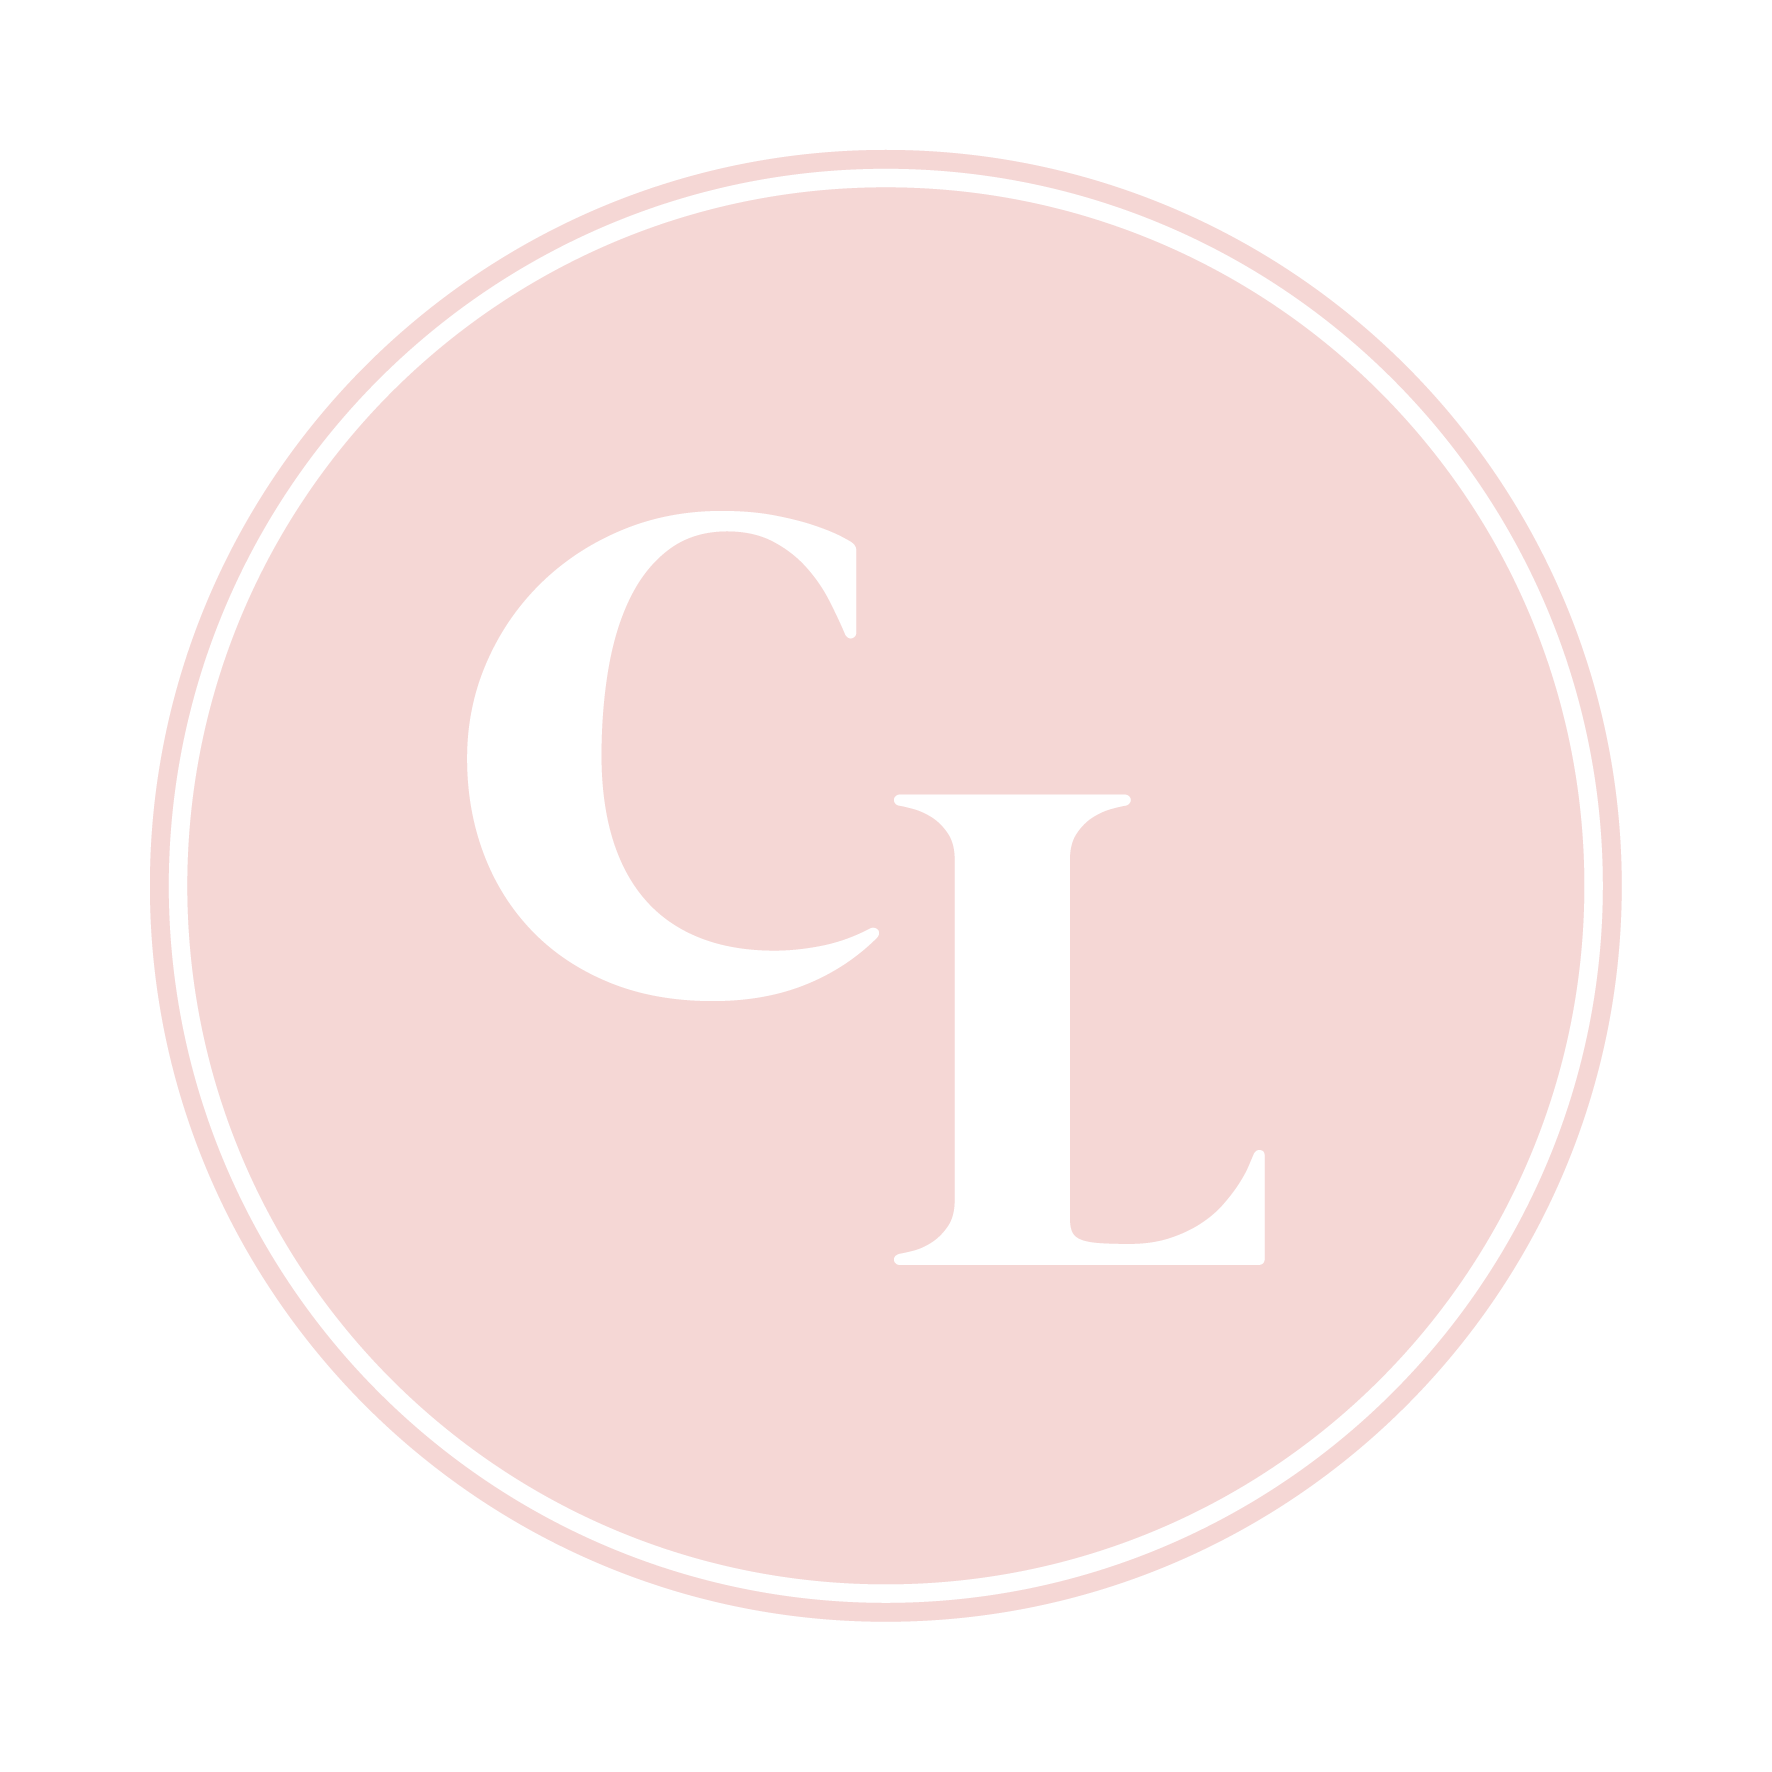 CLM-logo-transparent 18.png